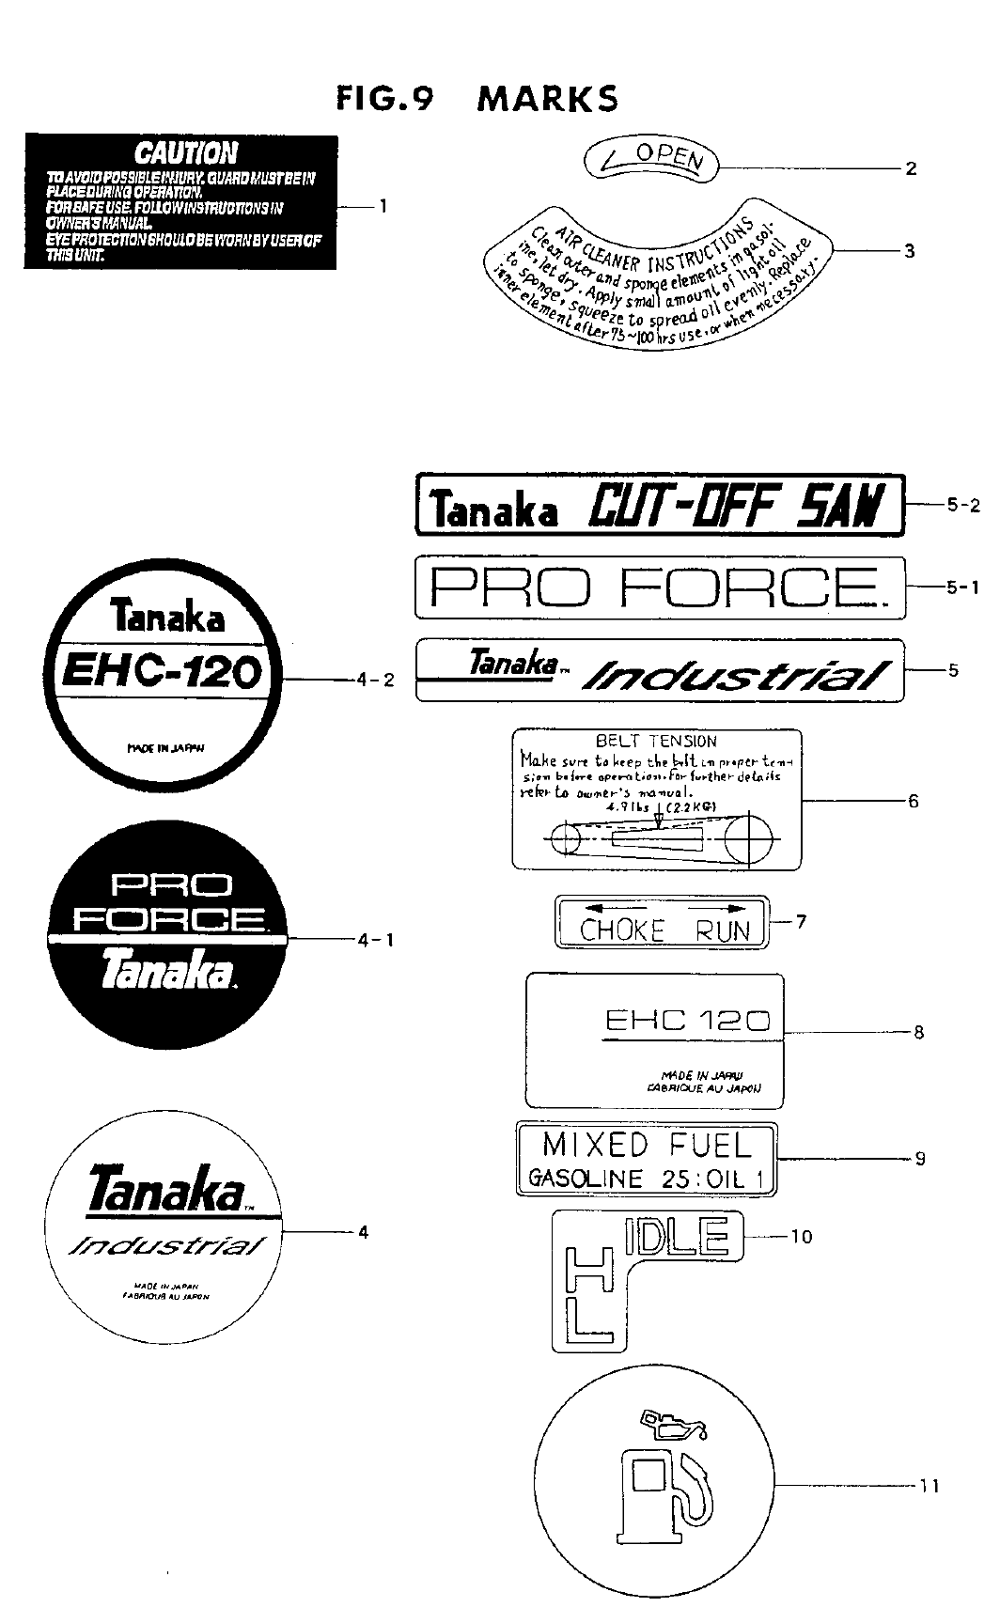 EHC-120-Tanaka-PB-8Break Down